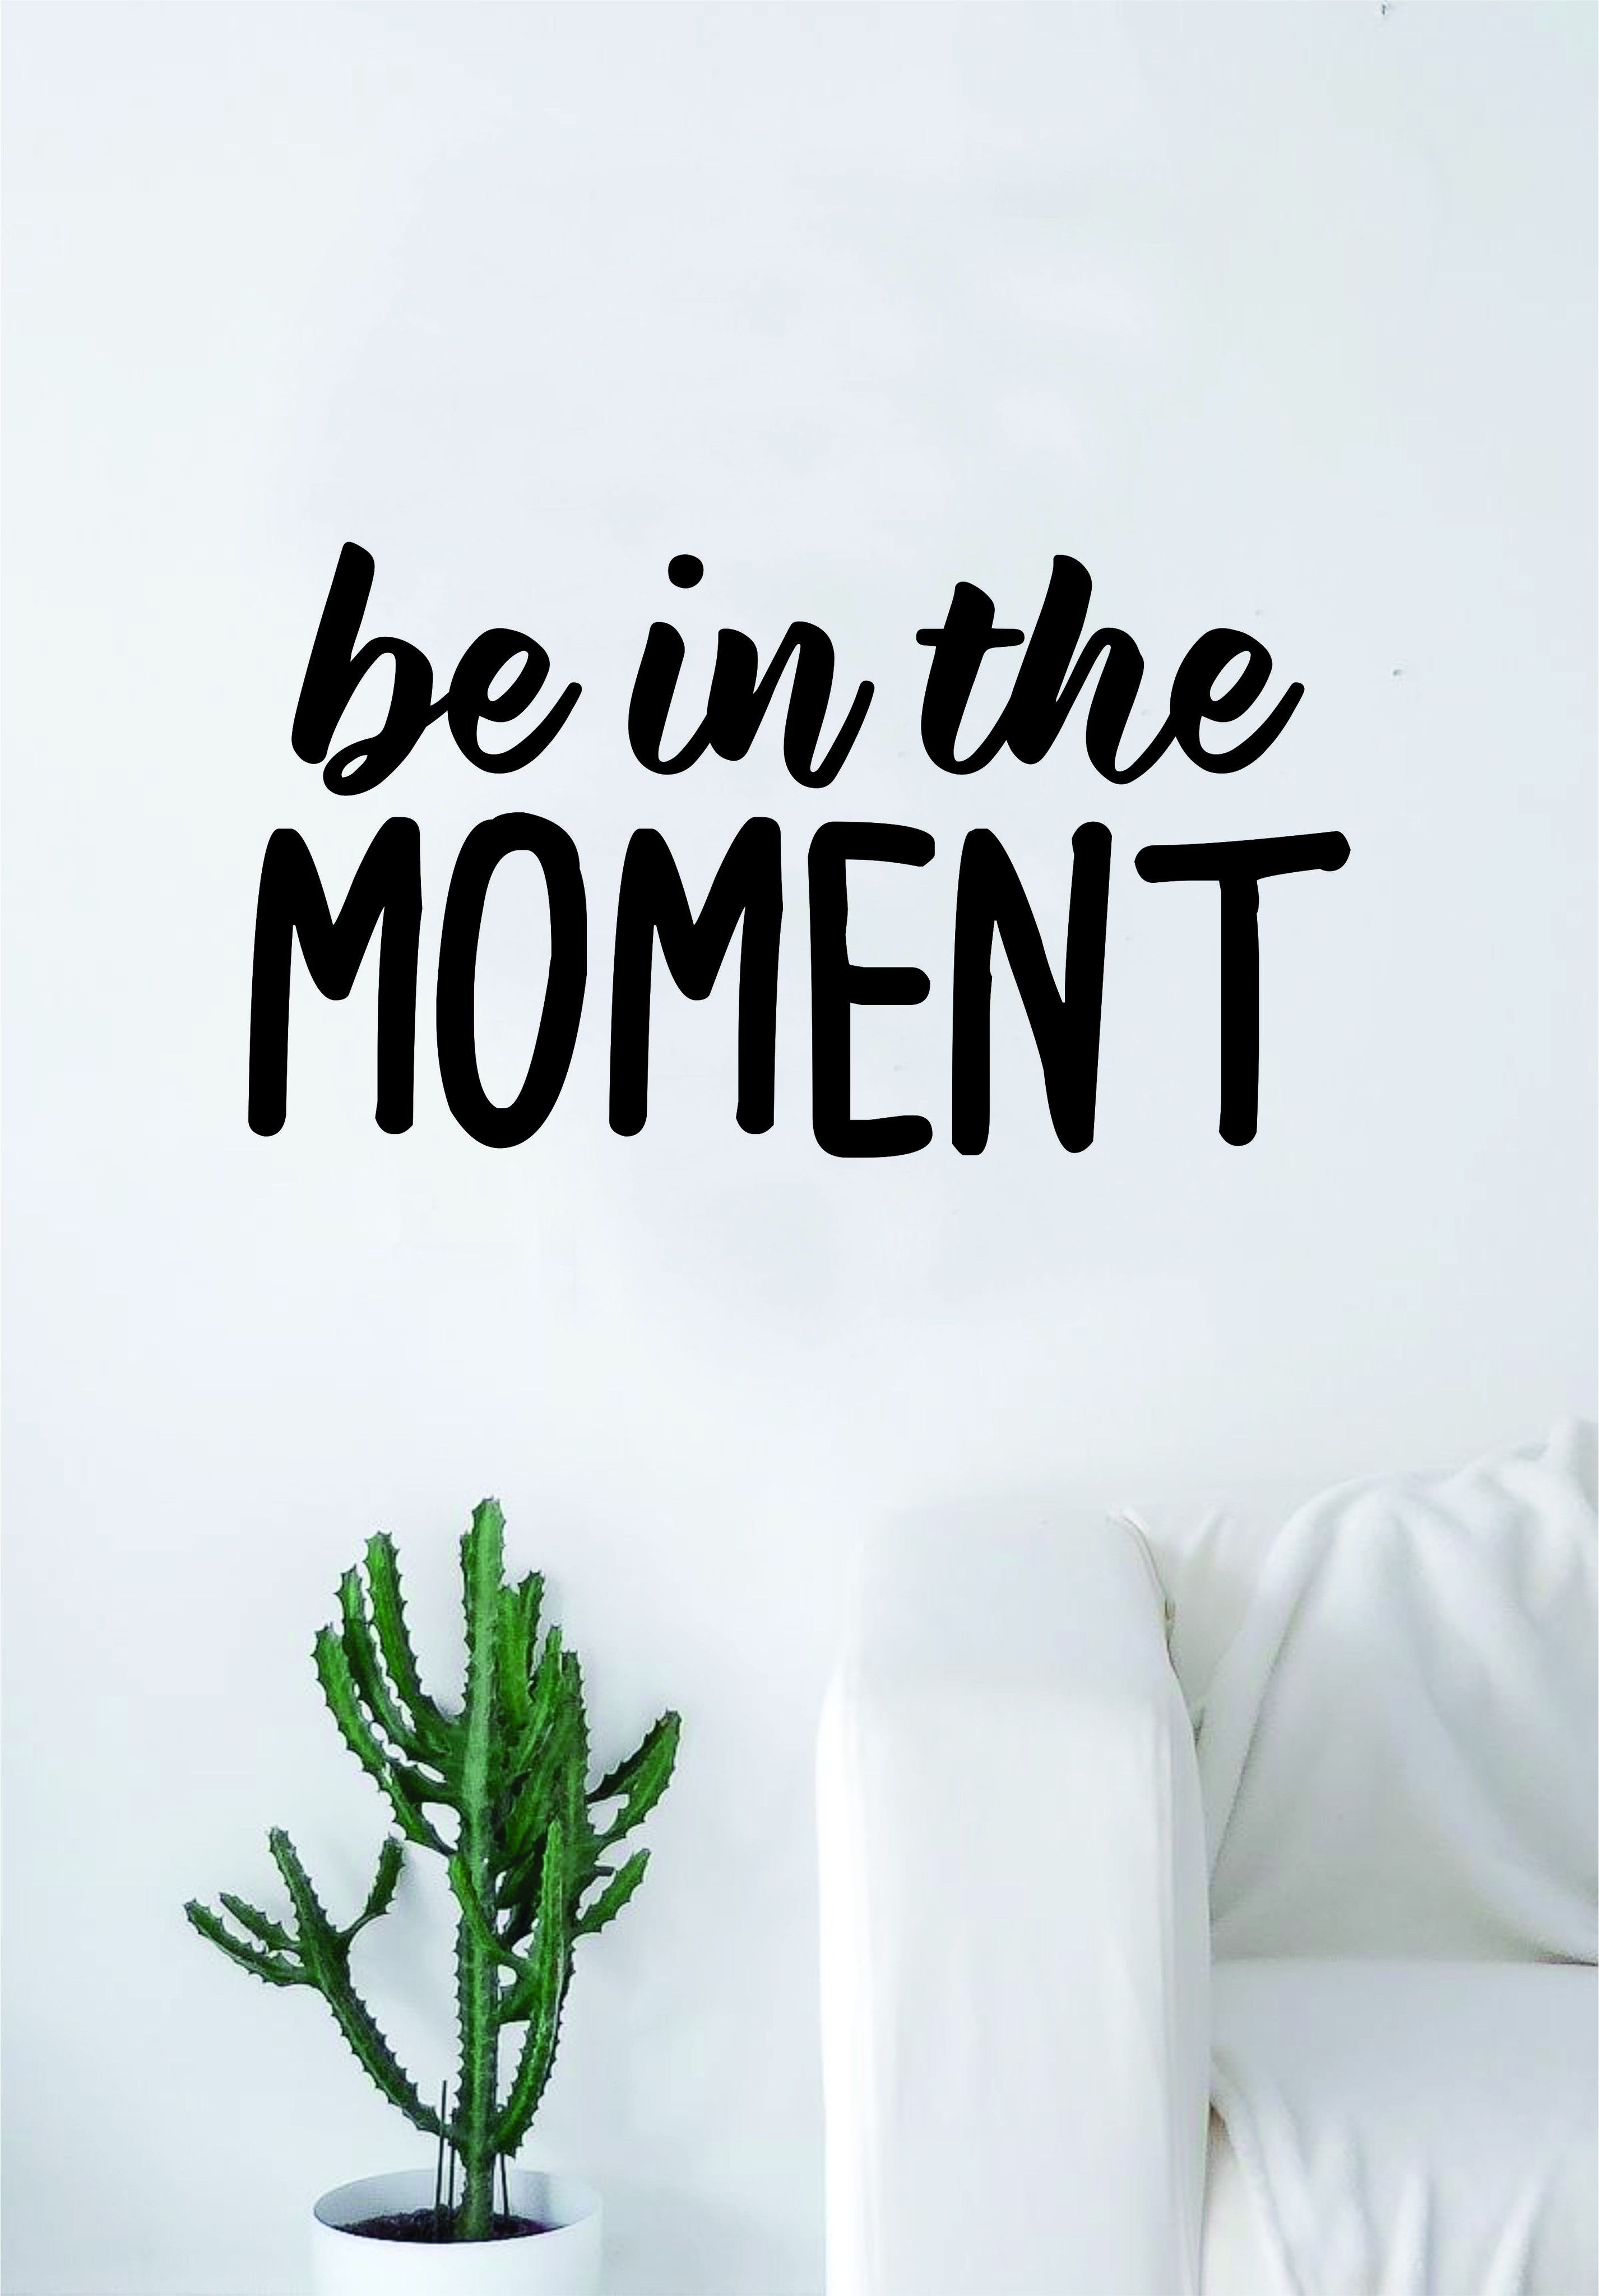 Be in the moment quote wall decal sticker bedroom living room art